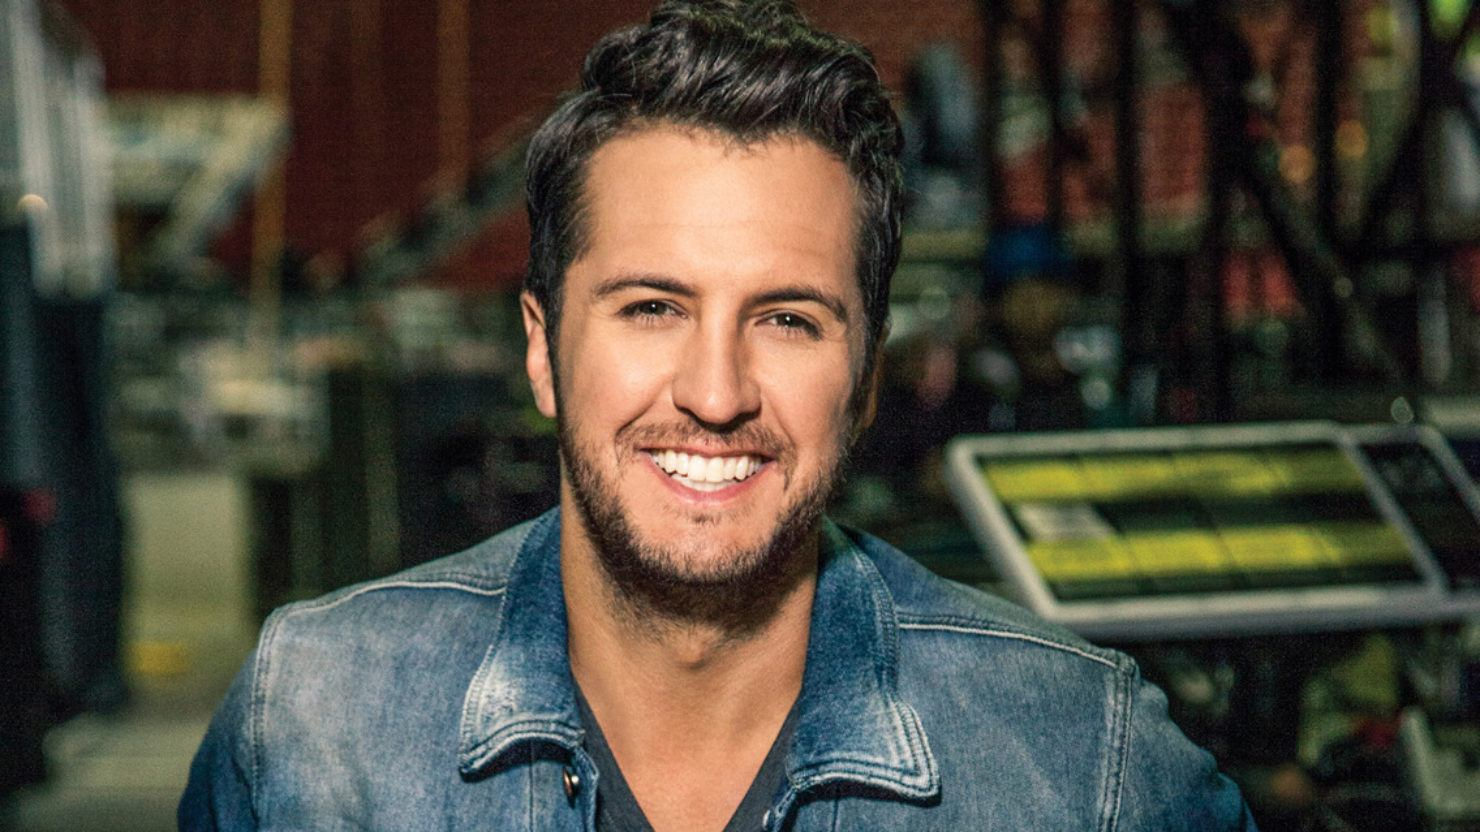 394803967a Luke Bryan Tour Dates and Concert Tickets